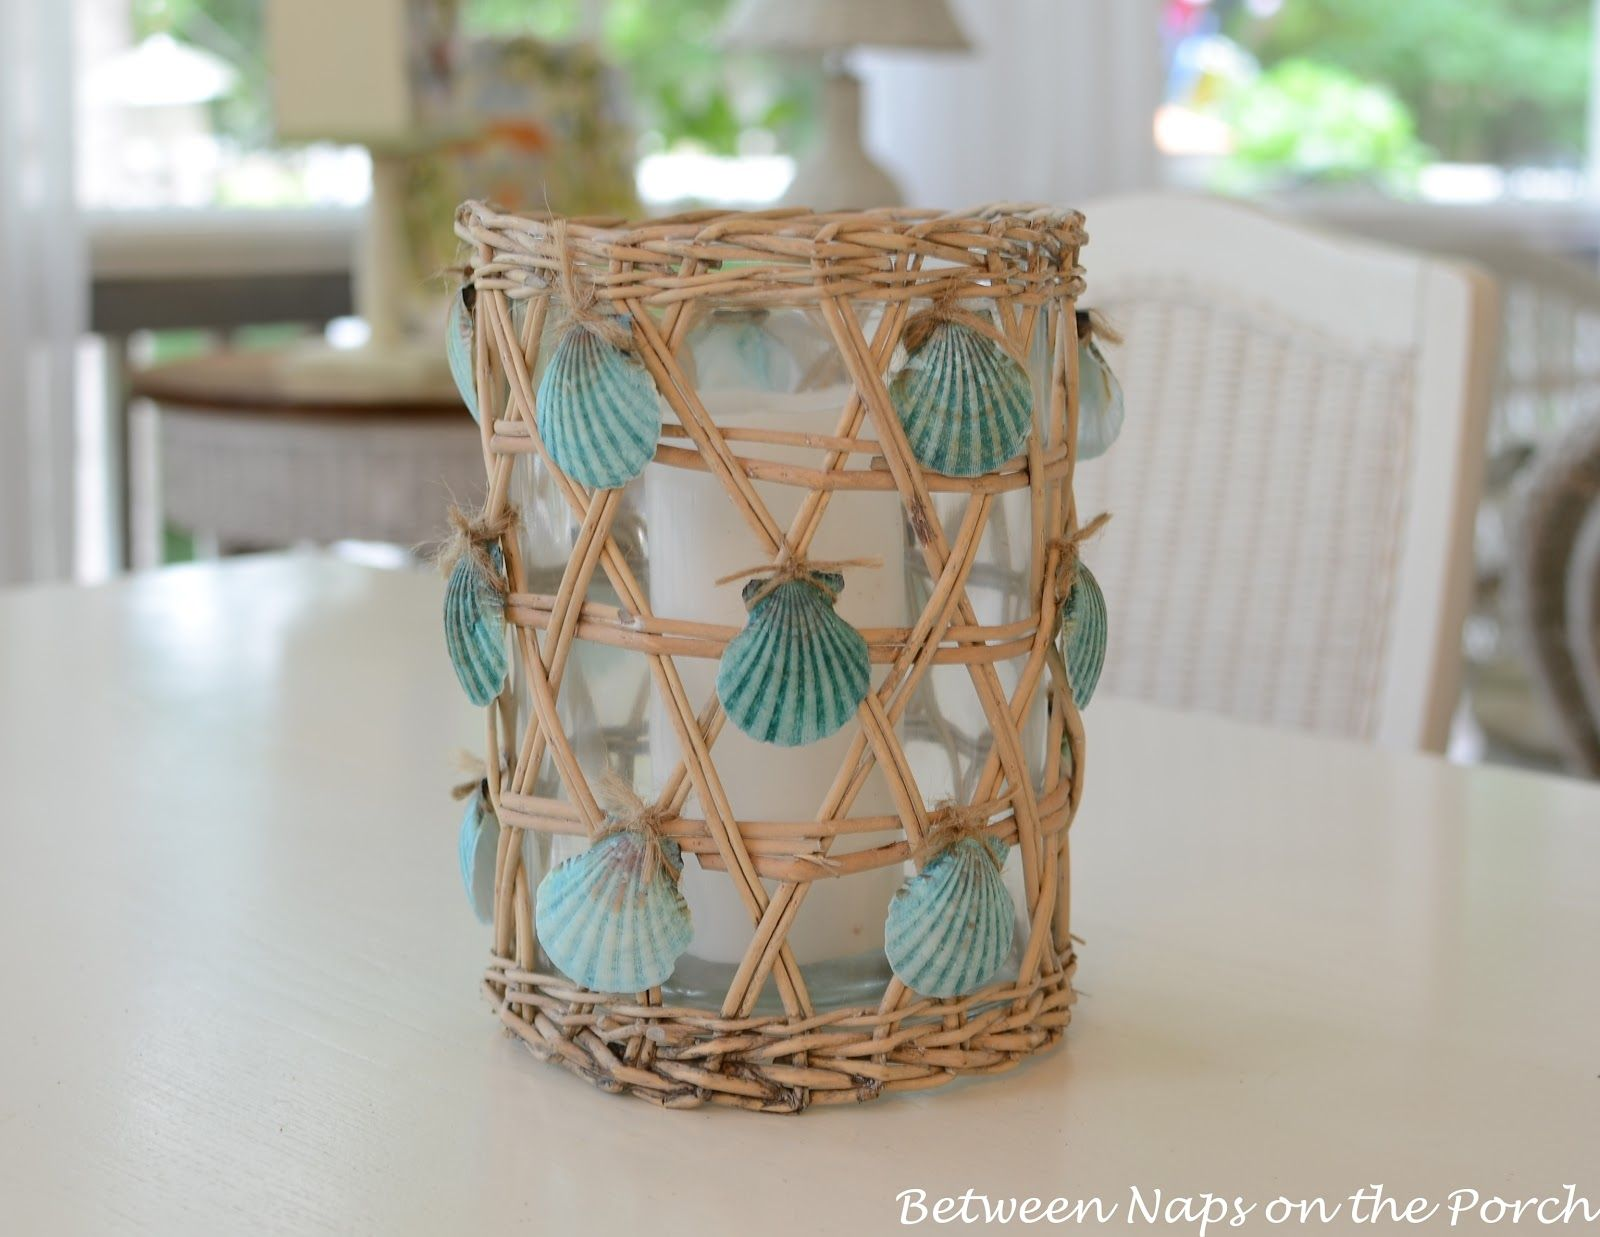 Diy seashell bathroom decor - Diy Seashell Bathroom Decor 39